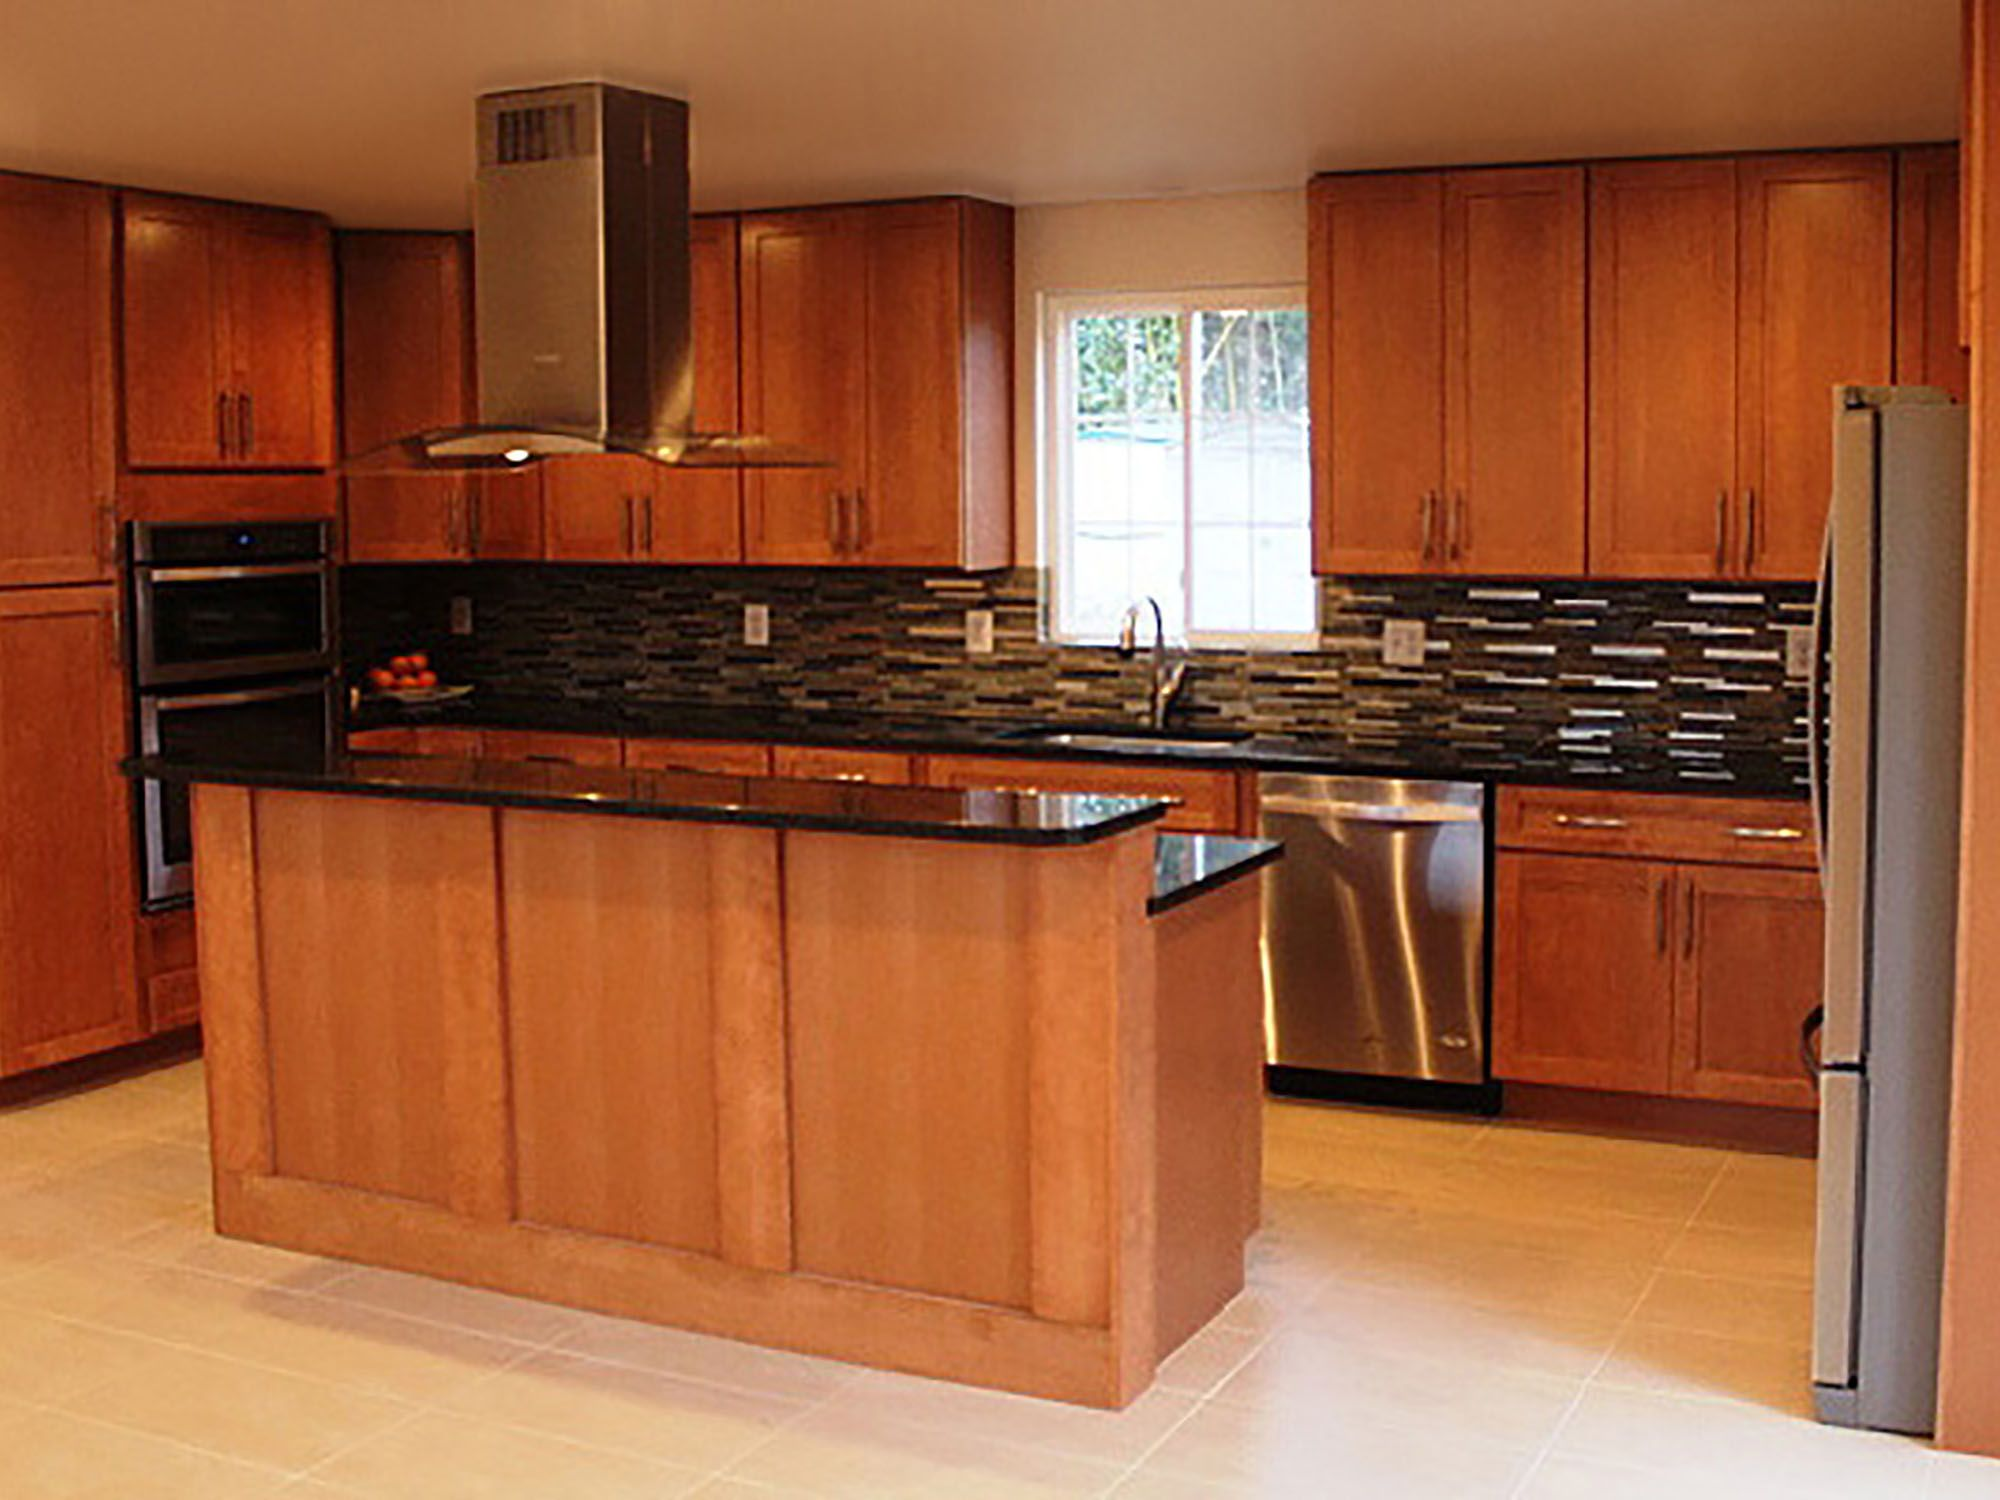 Preparing Cabinets For Granite Countertops Alexandria Virginia Kitchen Renovation Features